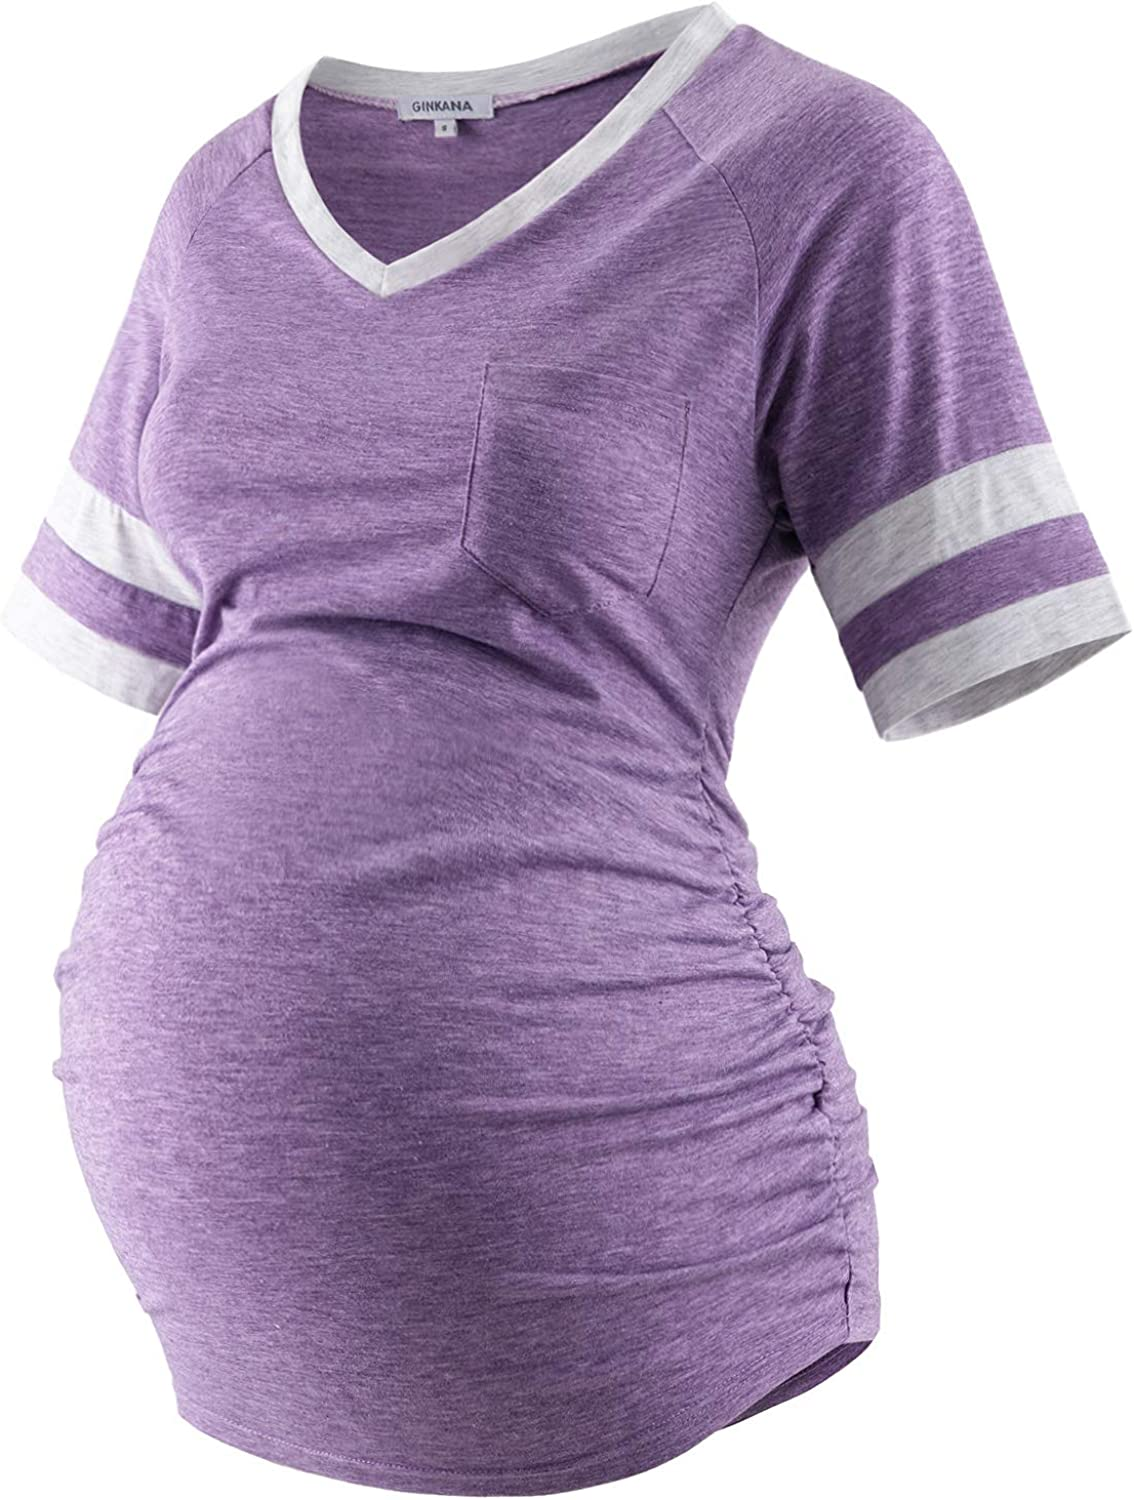 GINKANA Maternity Shirt Color Block New popularity T Po Sleeve with Super sale period limited Short